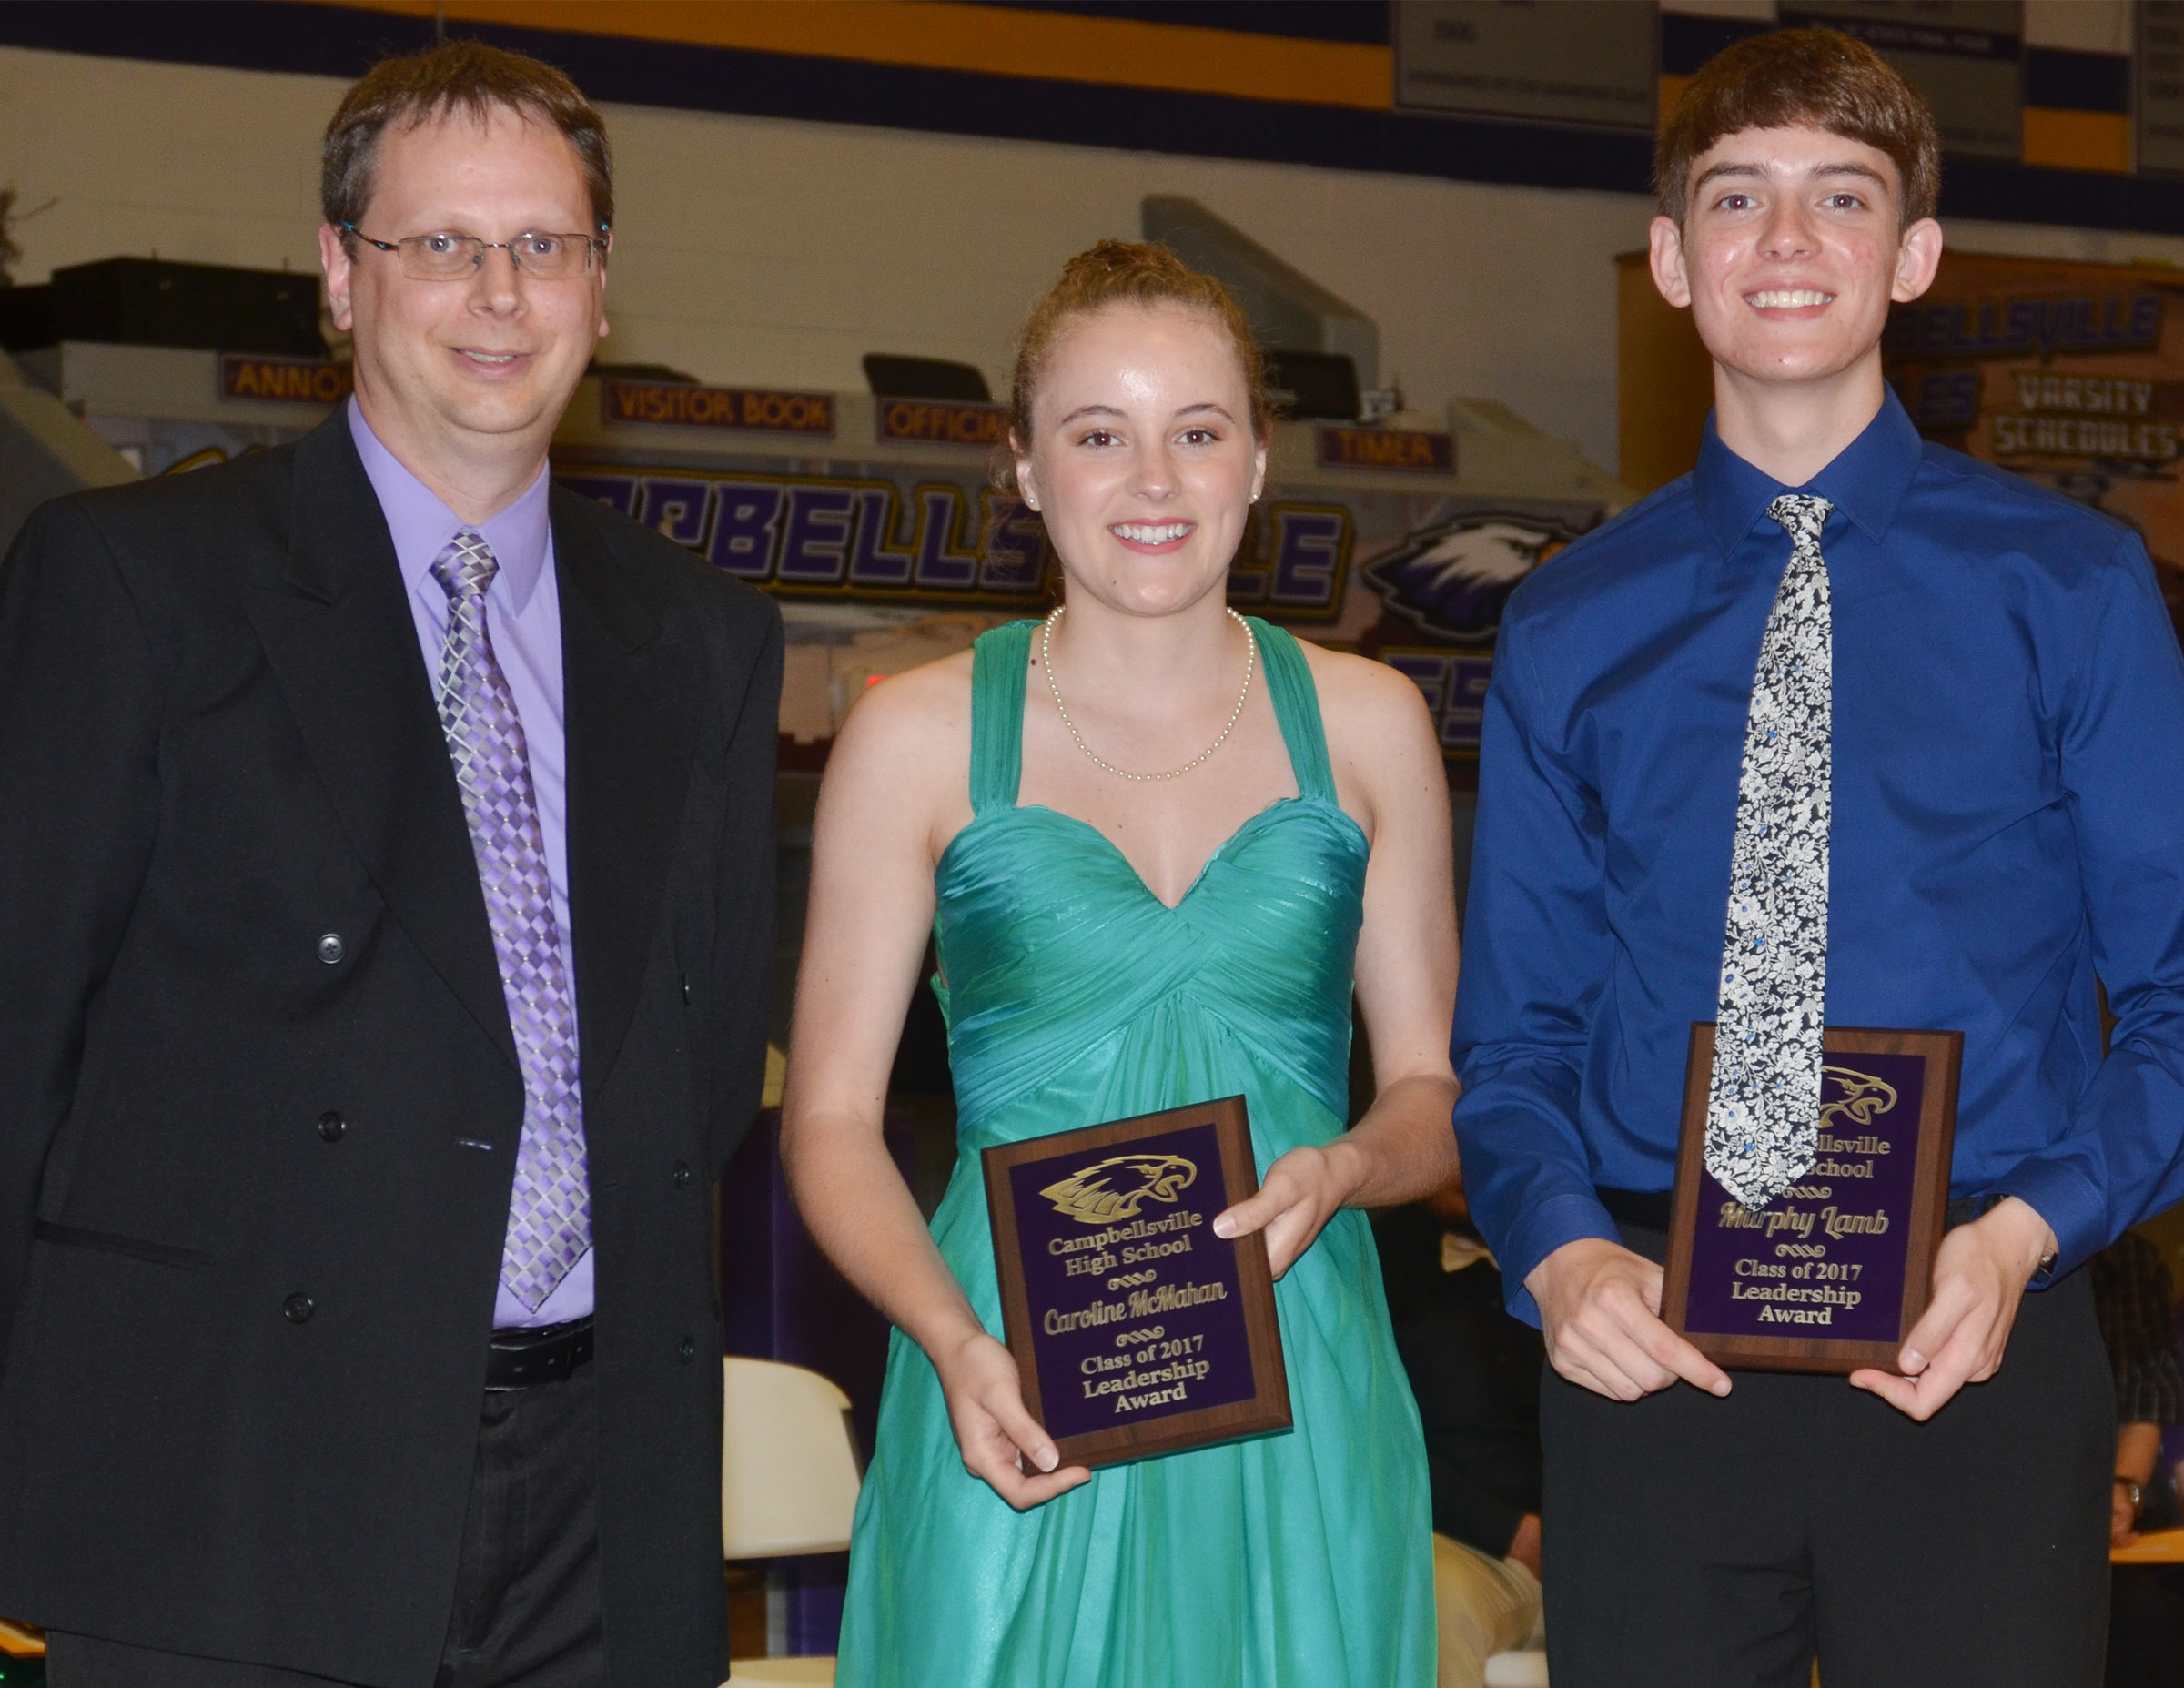 Caroline McMahan and Murphy Lamb receive the leadership award. They are pictured with guidance counselor Richard Dooley.